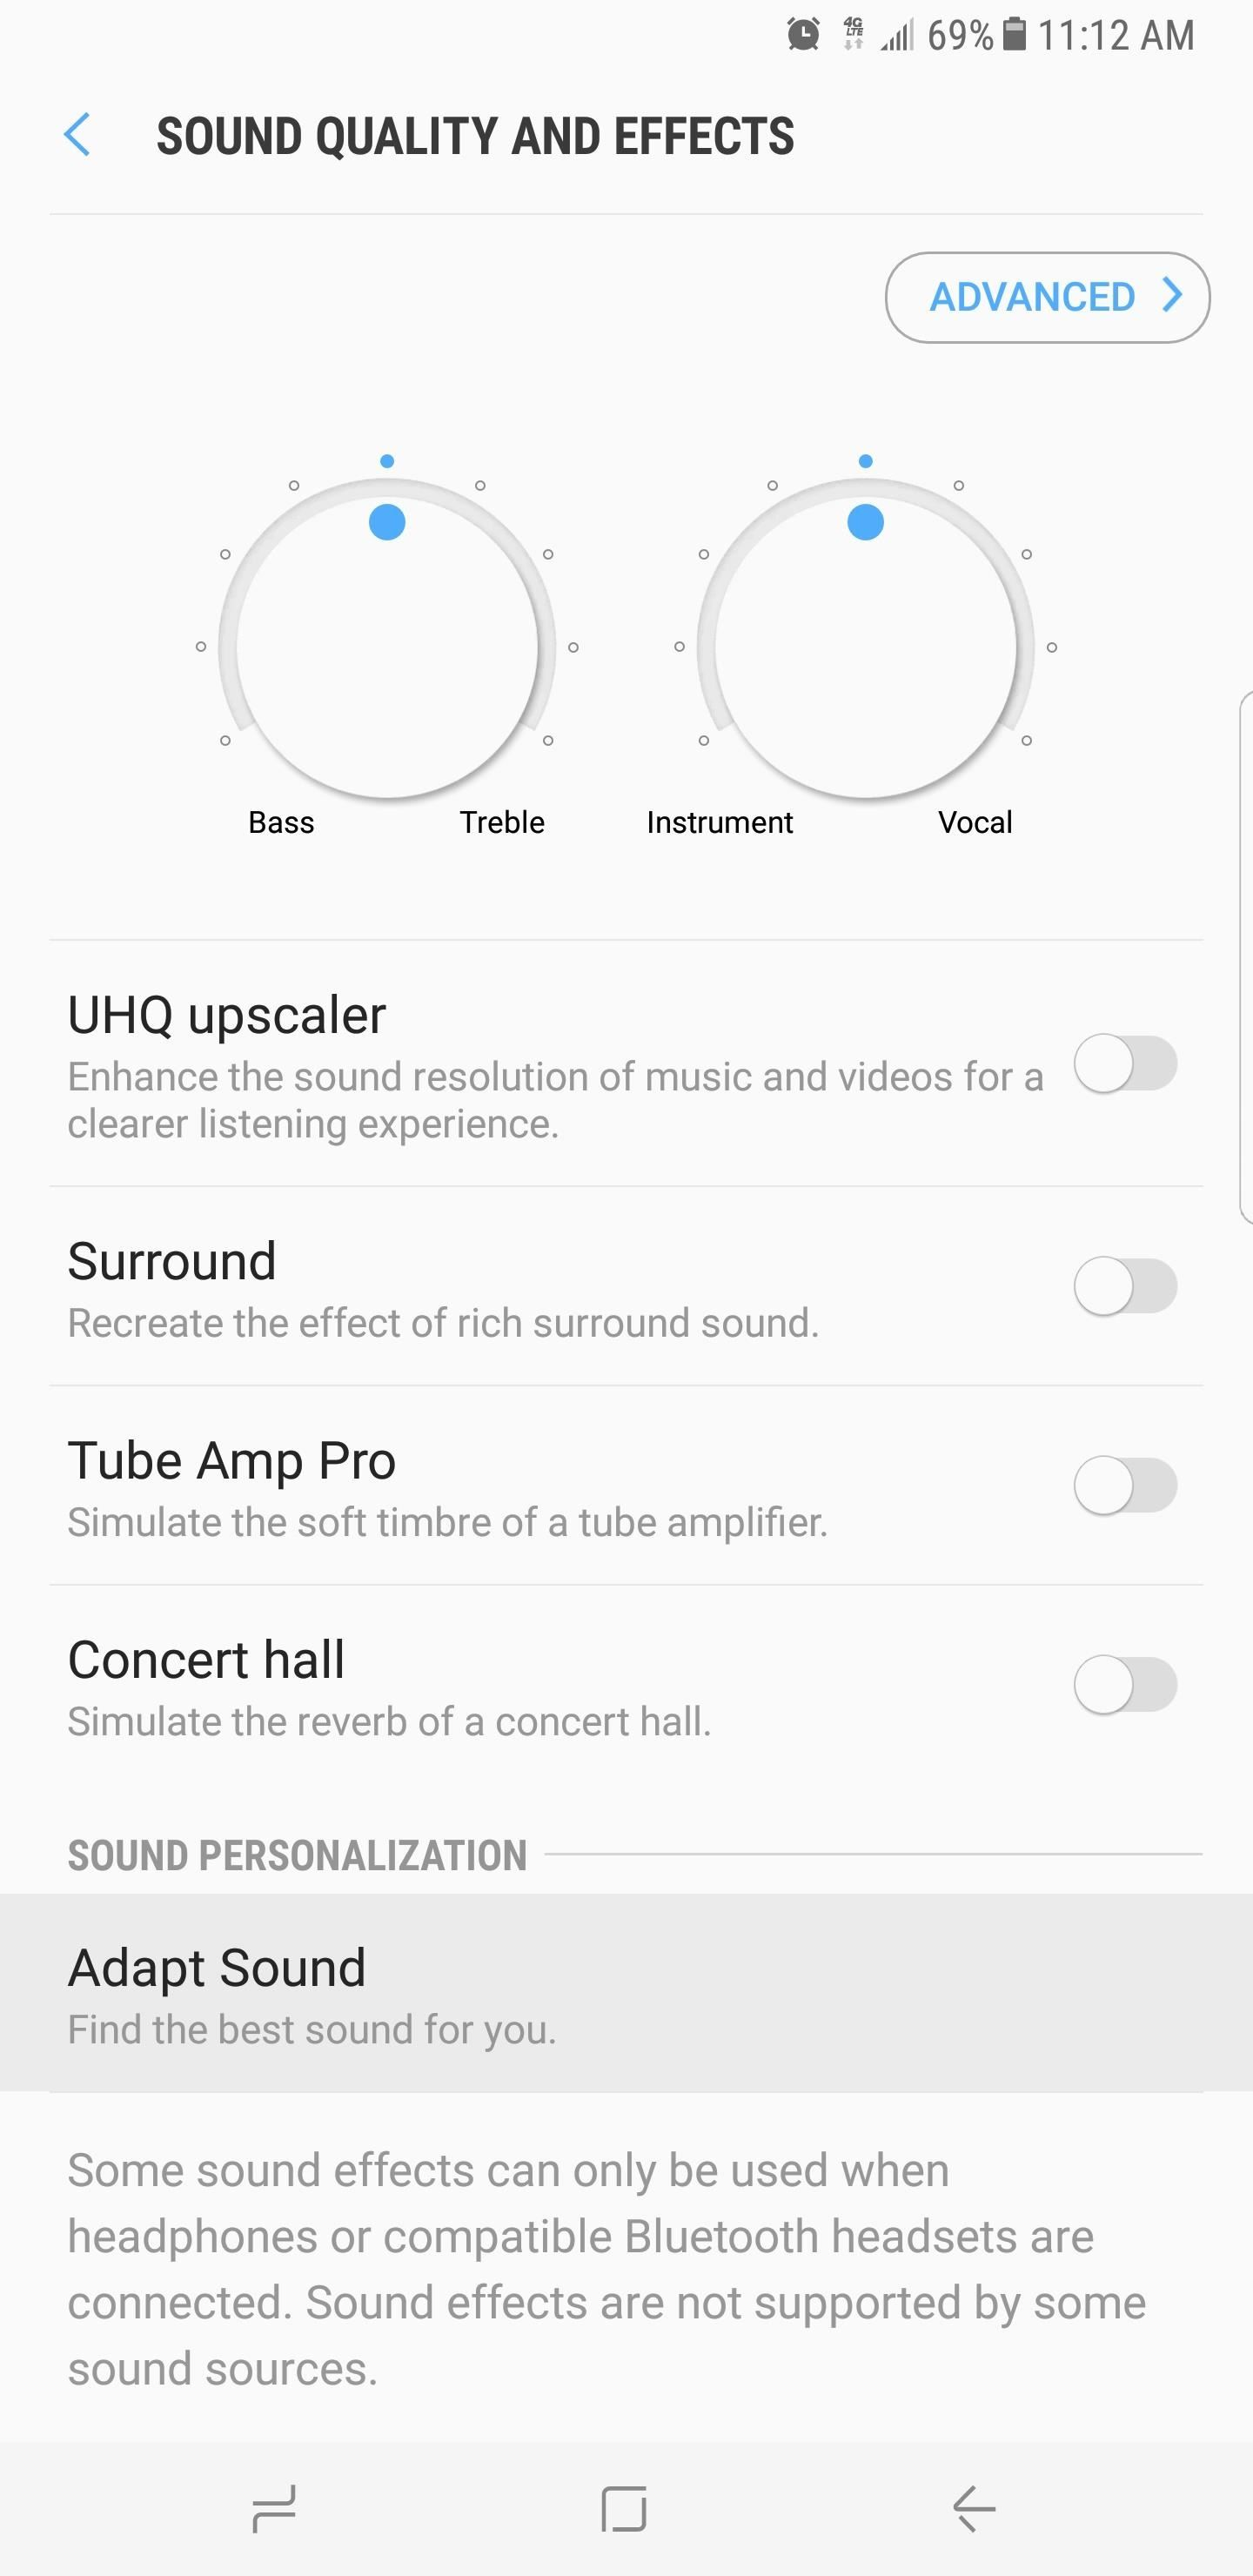 The Galaxy S8's 'Adapt Sound' Feature Makes Your AKG